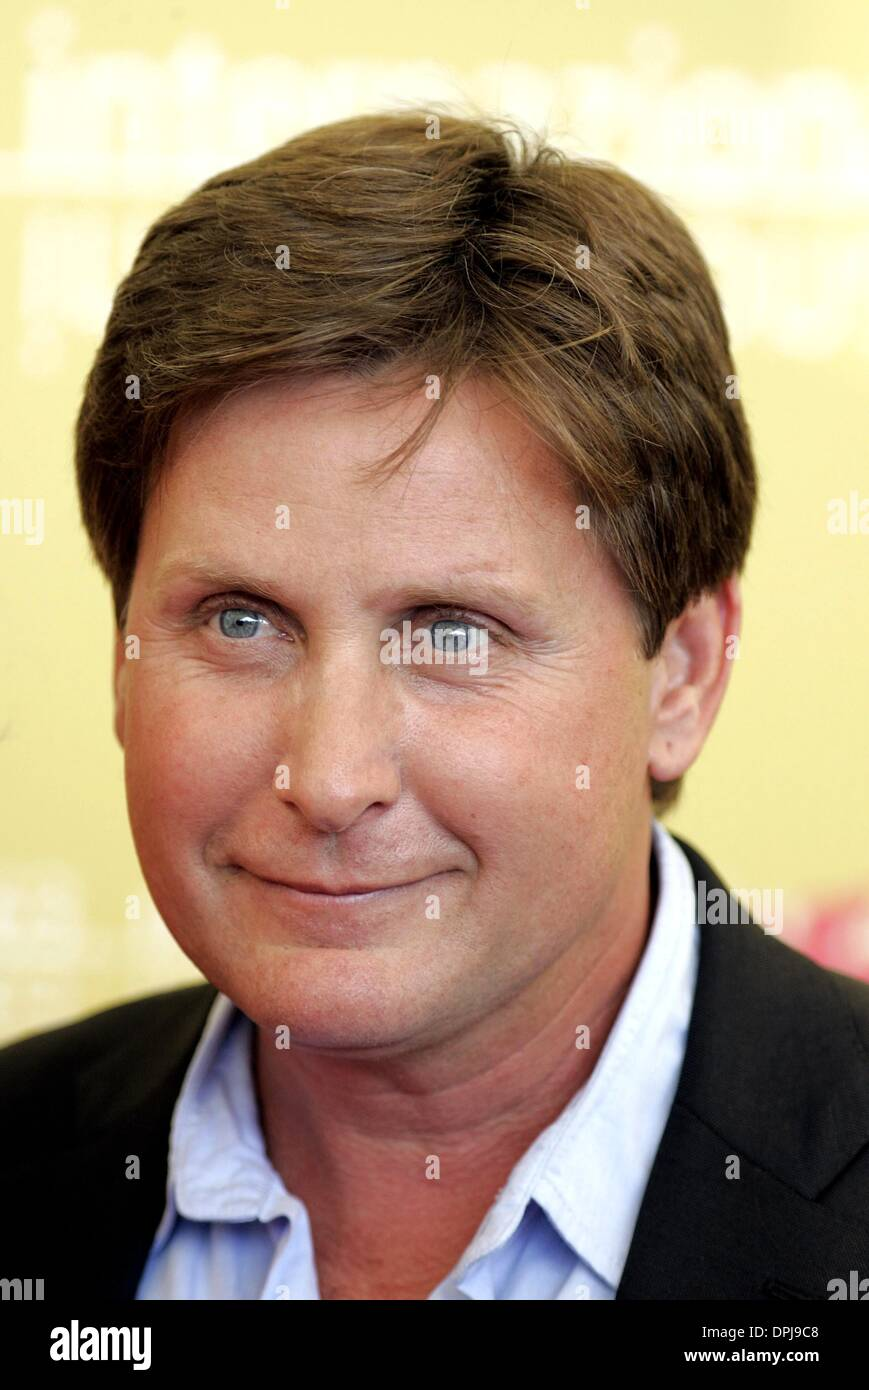 Oct. 10, 2006 - 63rd Venice Film Festival, VENICE, ITALY - EMILIO ESTEVEZ.ACTOR.BOBBY, PHOTOCALL.63RD VENICE FILM Stock Photo